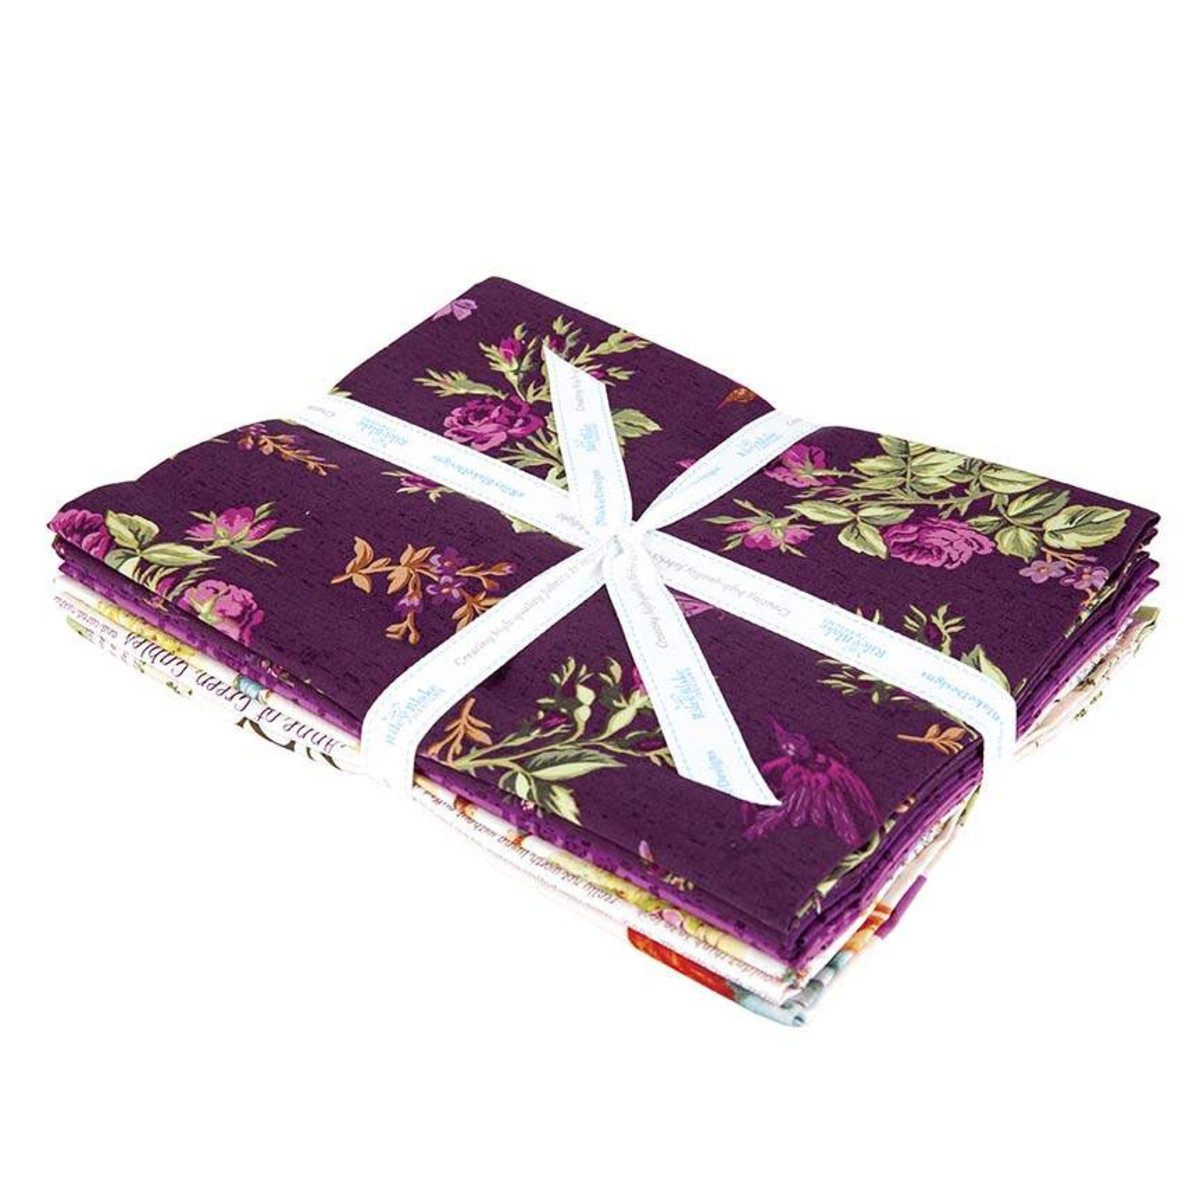 Riley Blake One Yard Bundle - Anne of Green Gables Eggplant